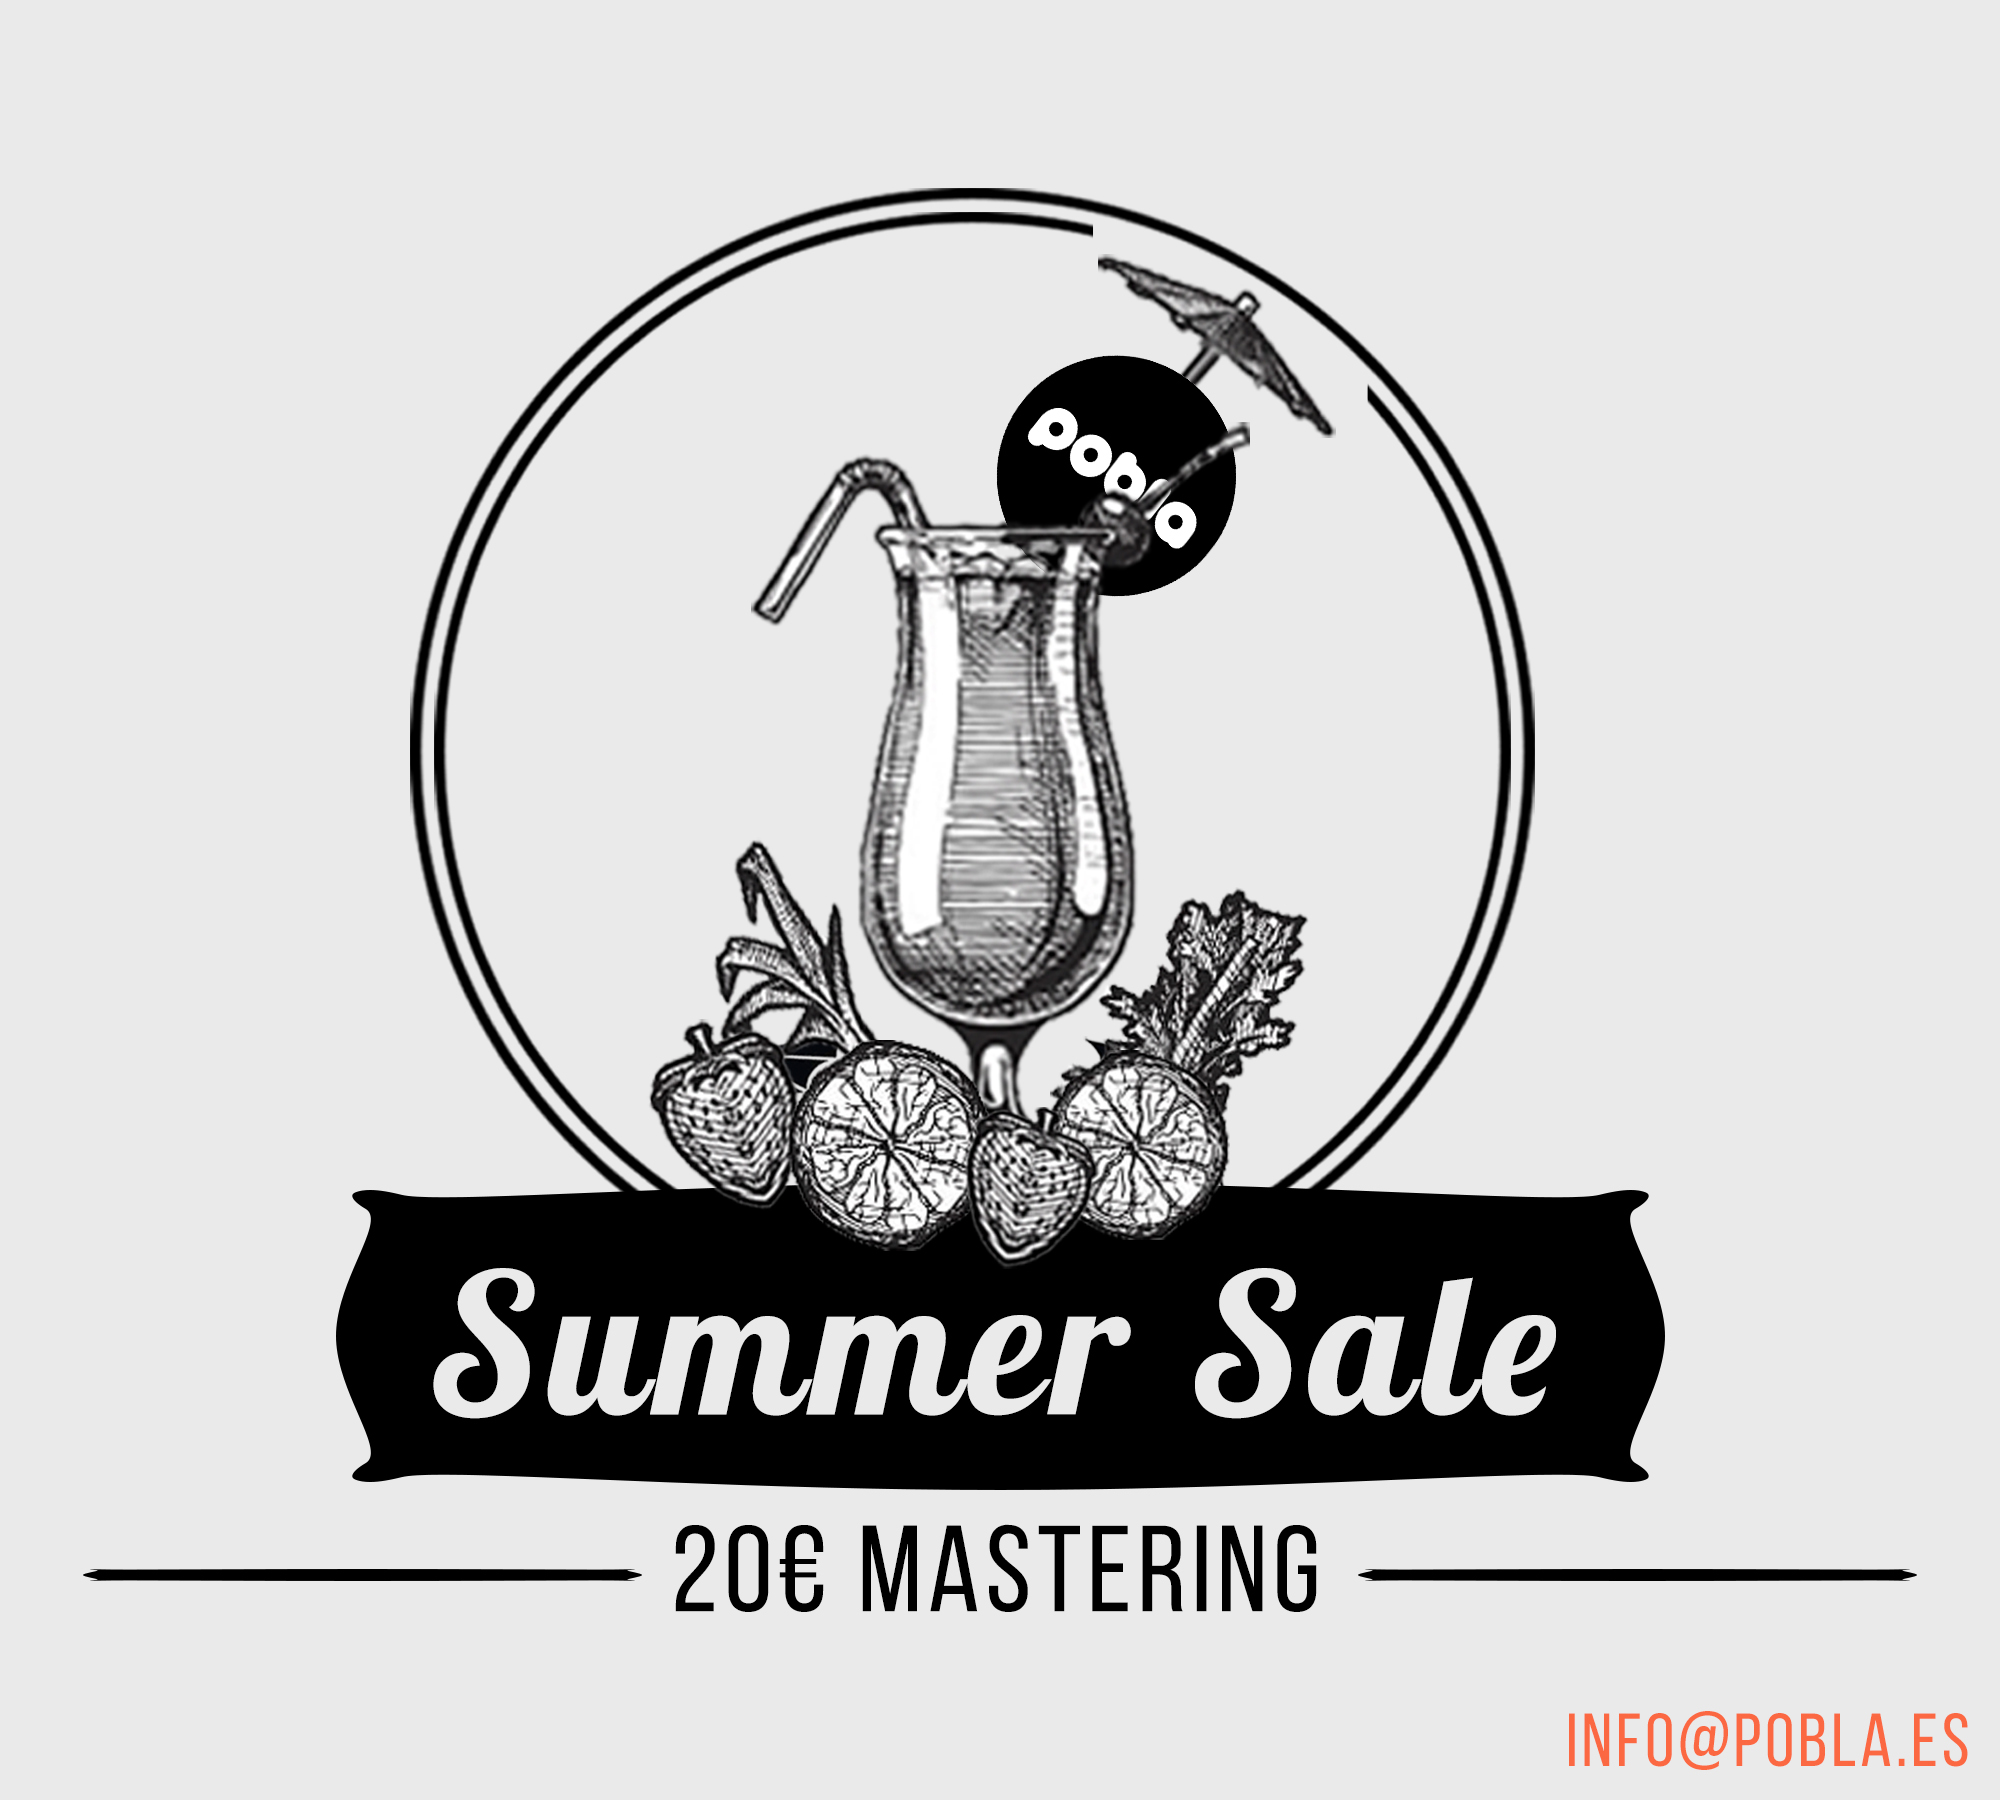 July 30th — 20€ MASTERING SUMMER SALE!